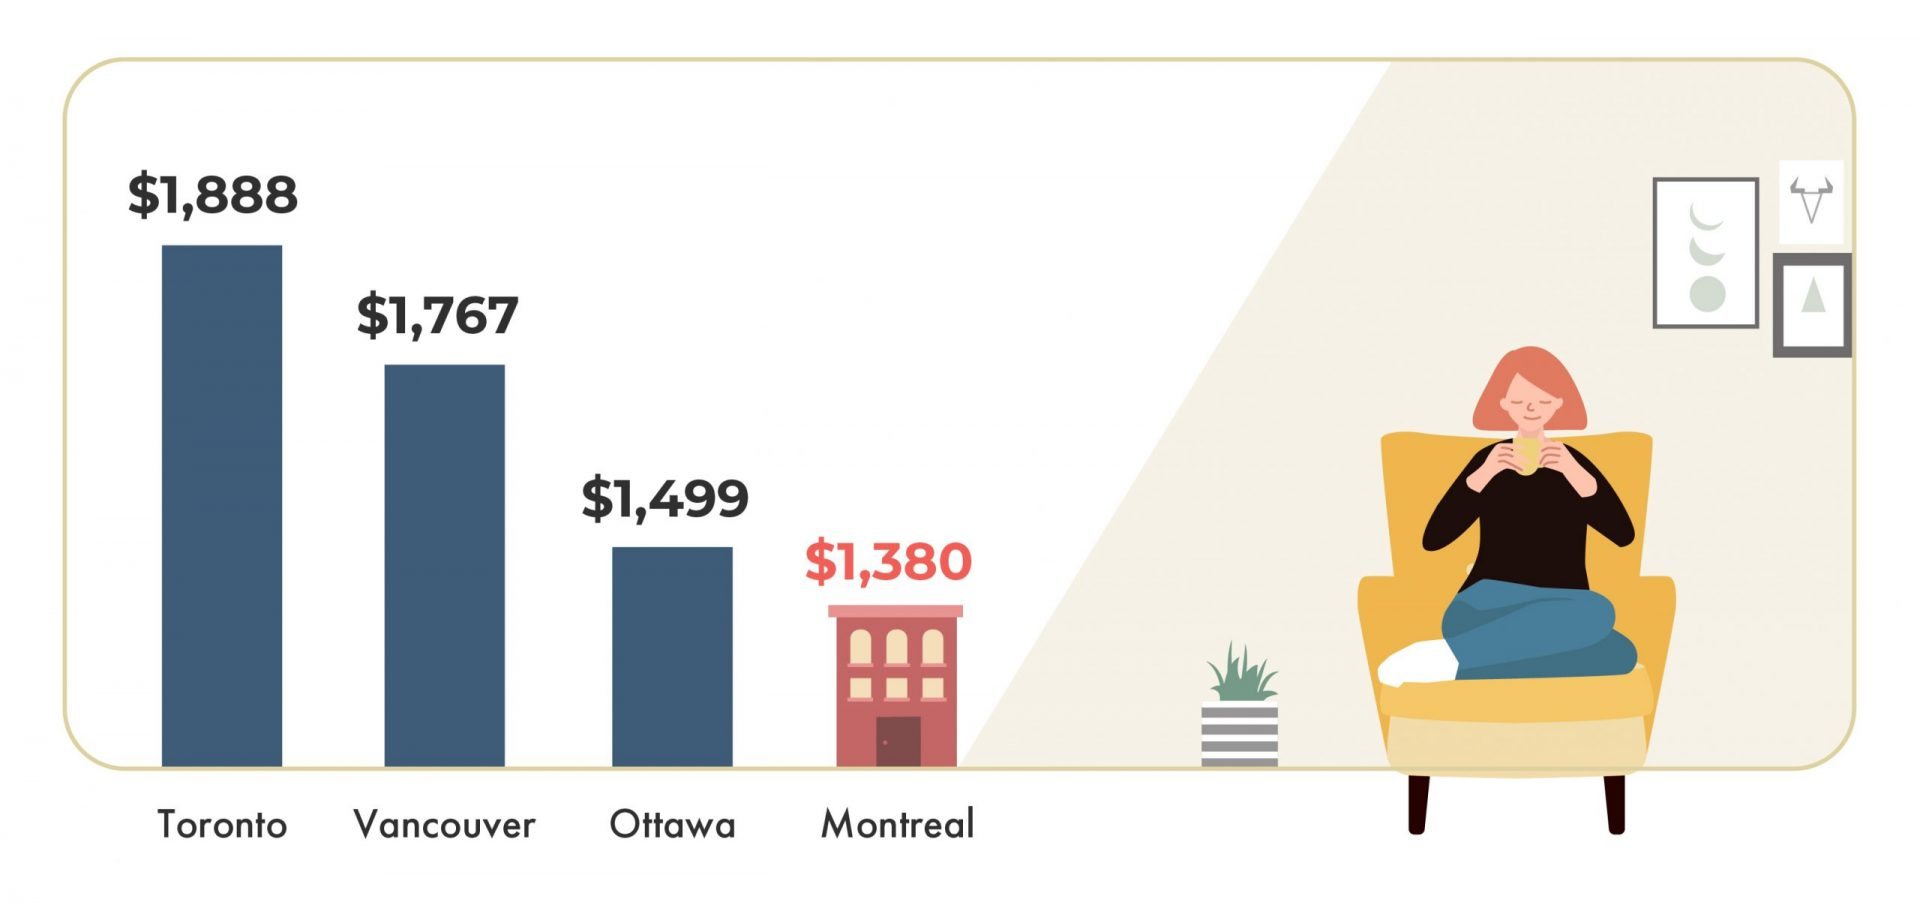 February 2020 Montreal cost of living